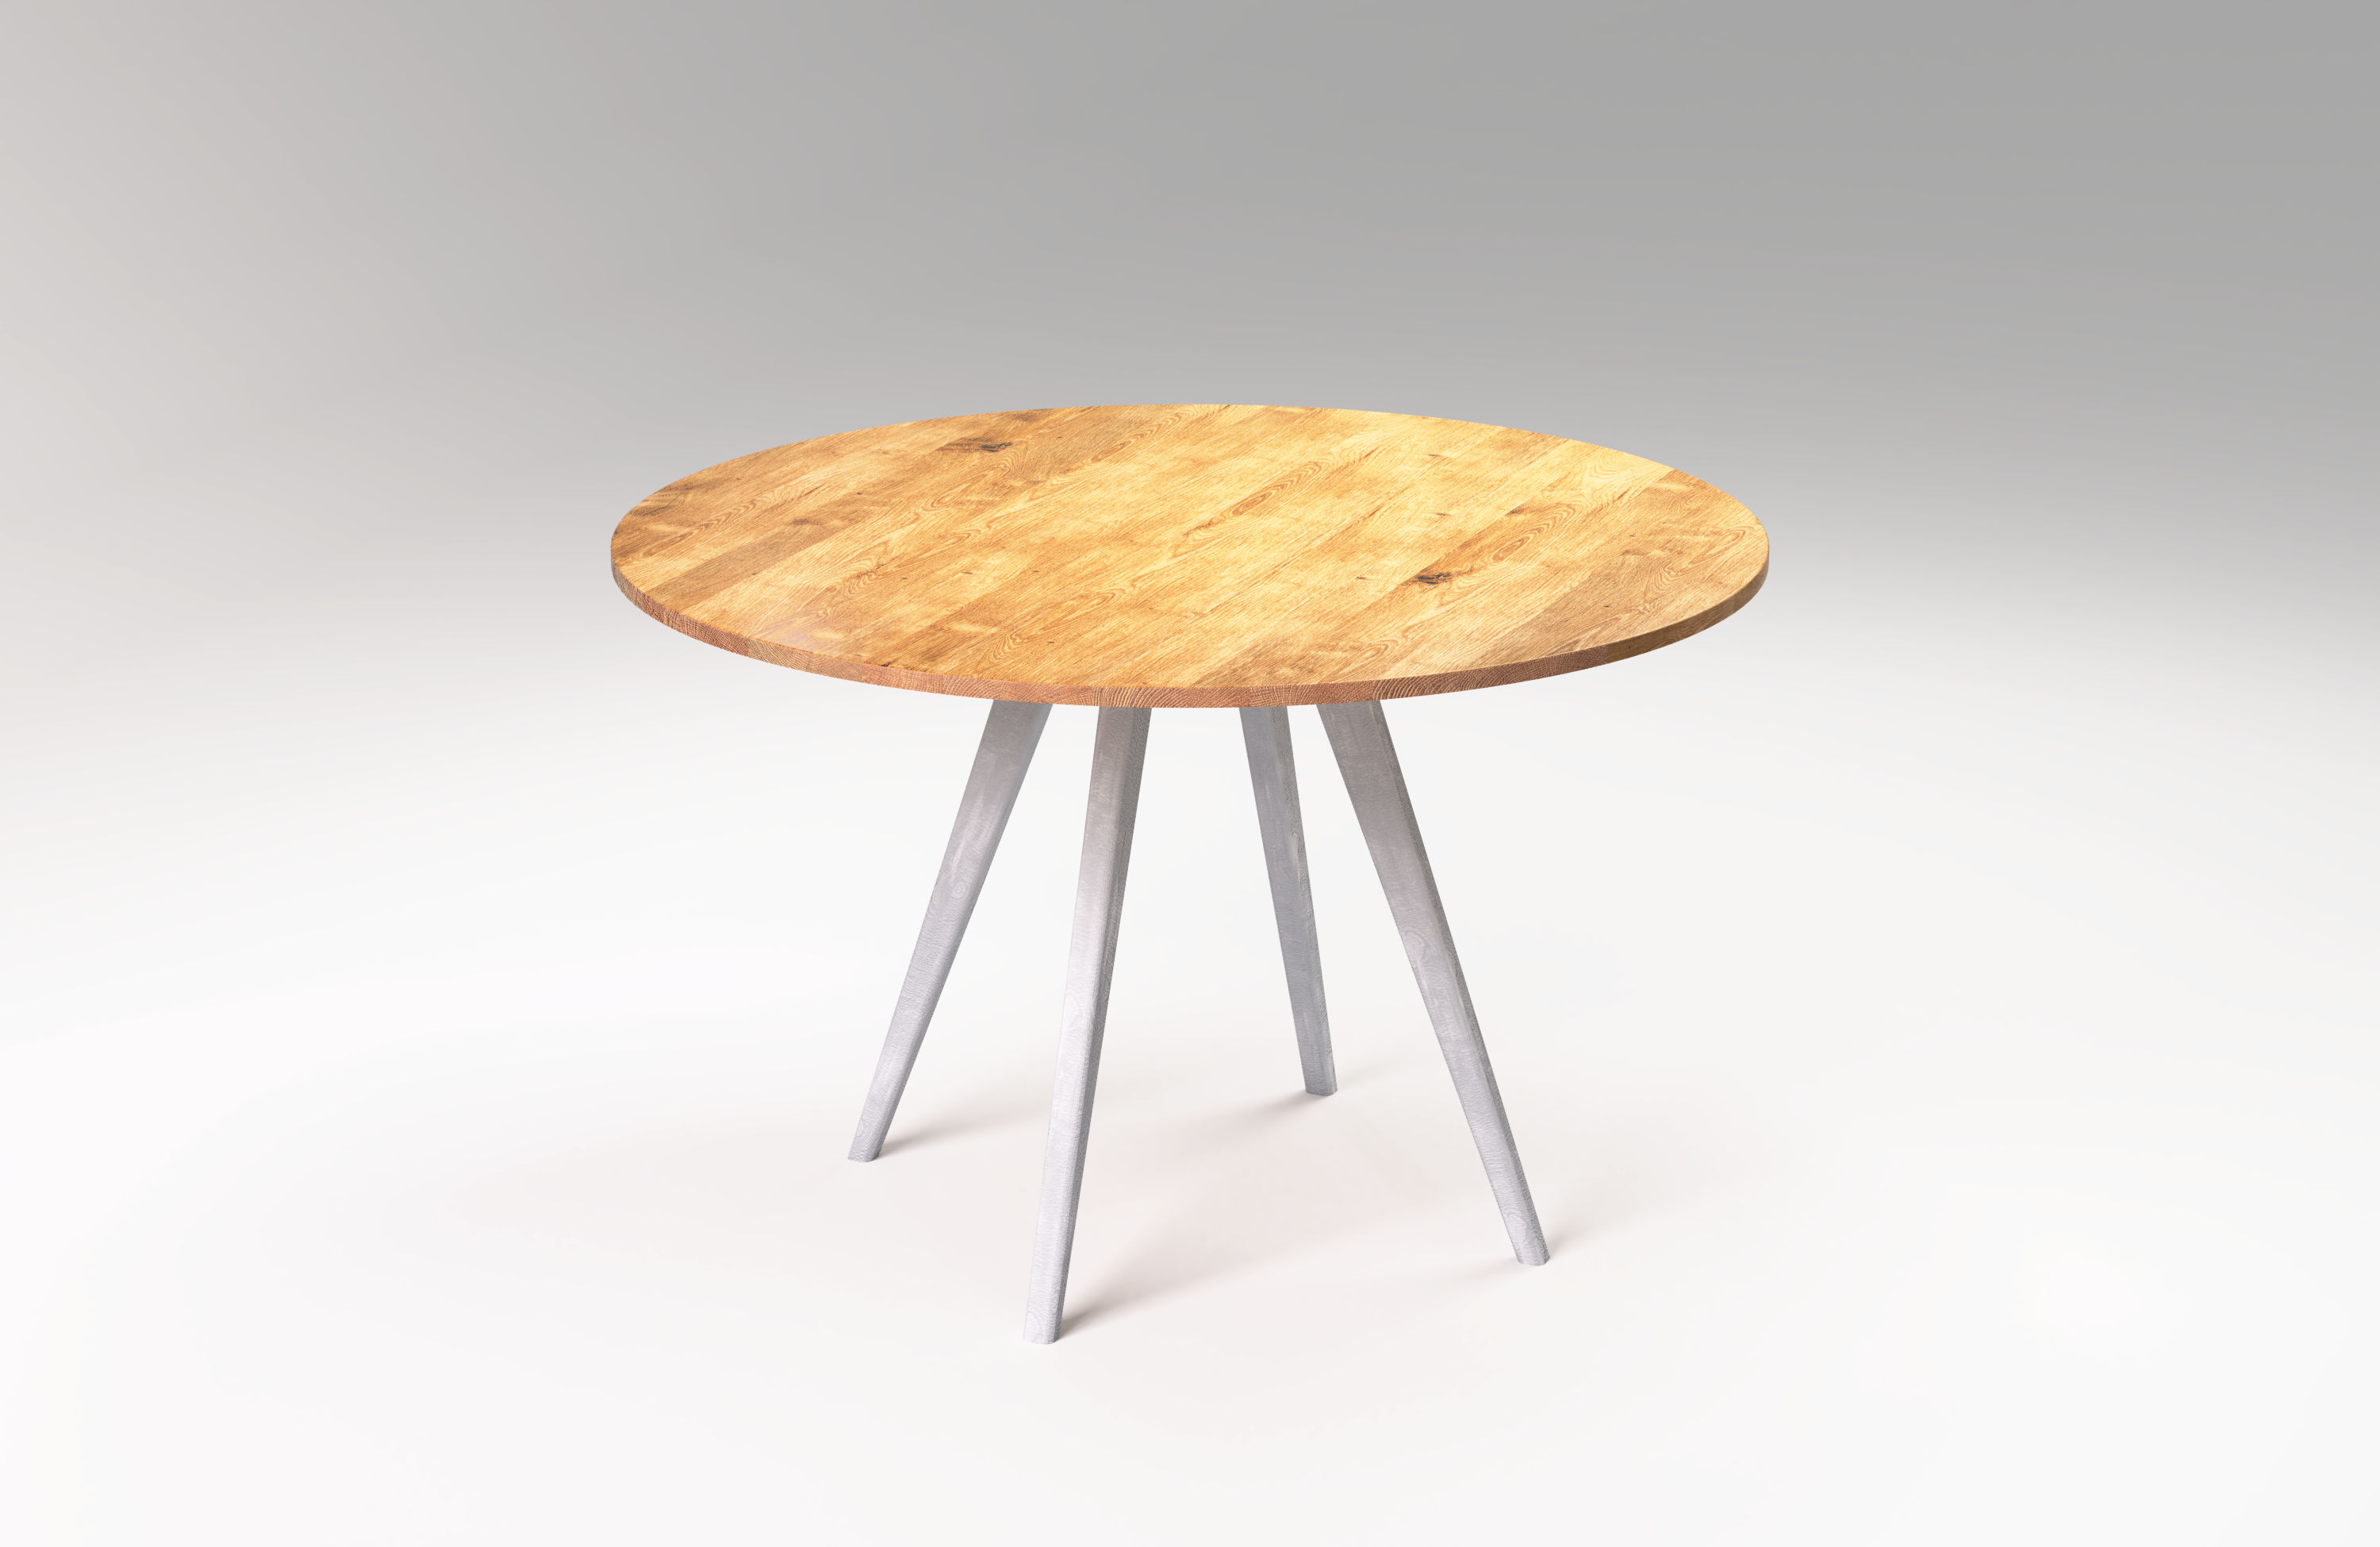 Måne Solid Wood Round Dining Table Sfd Furniture